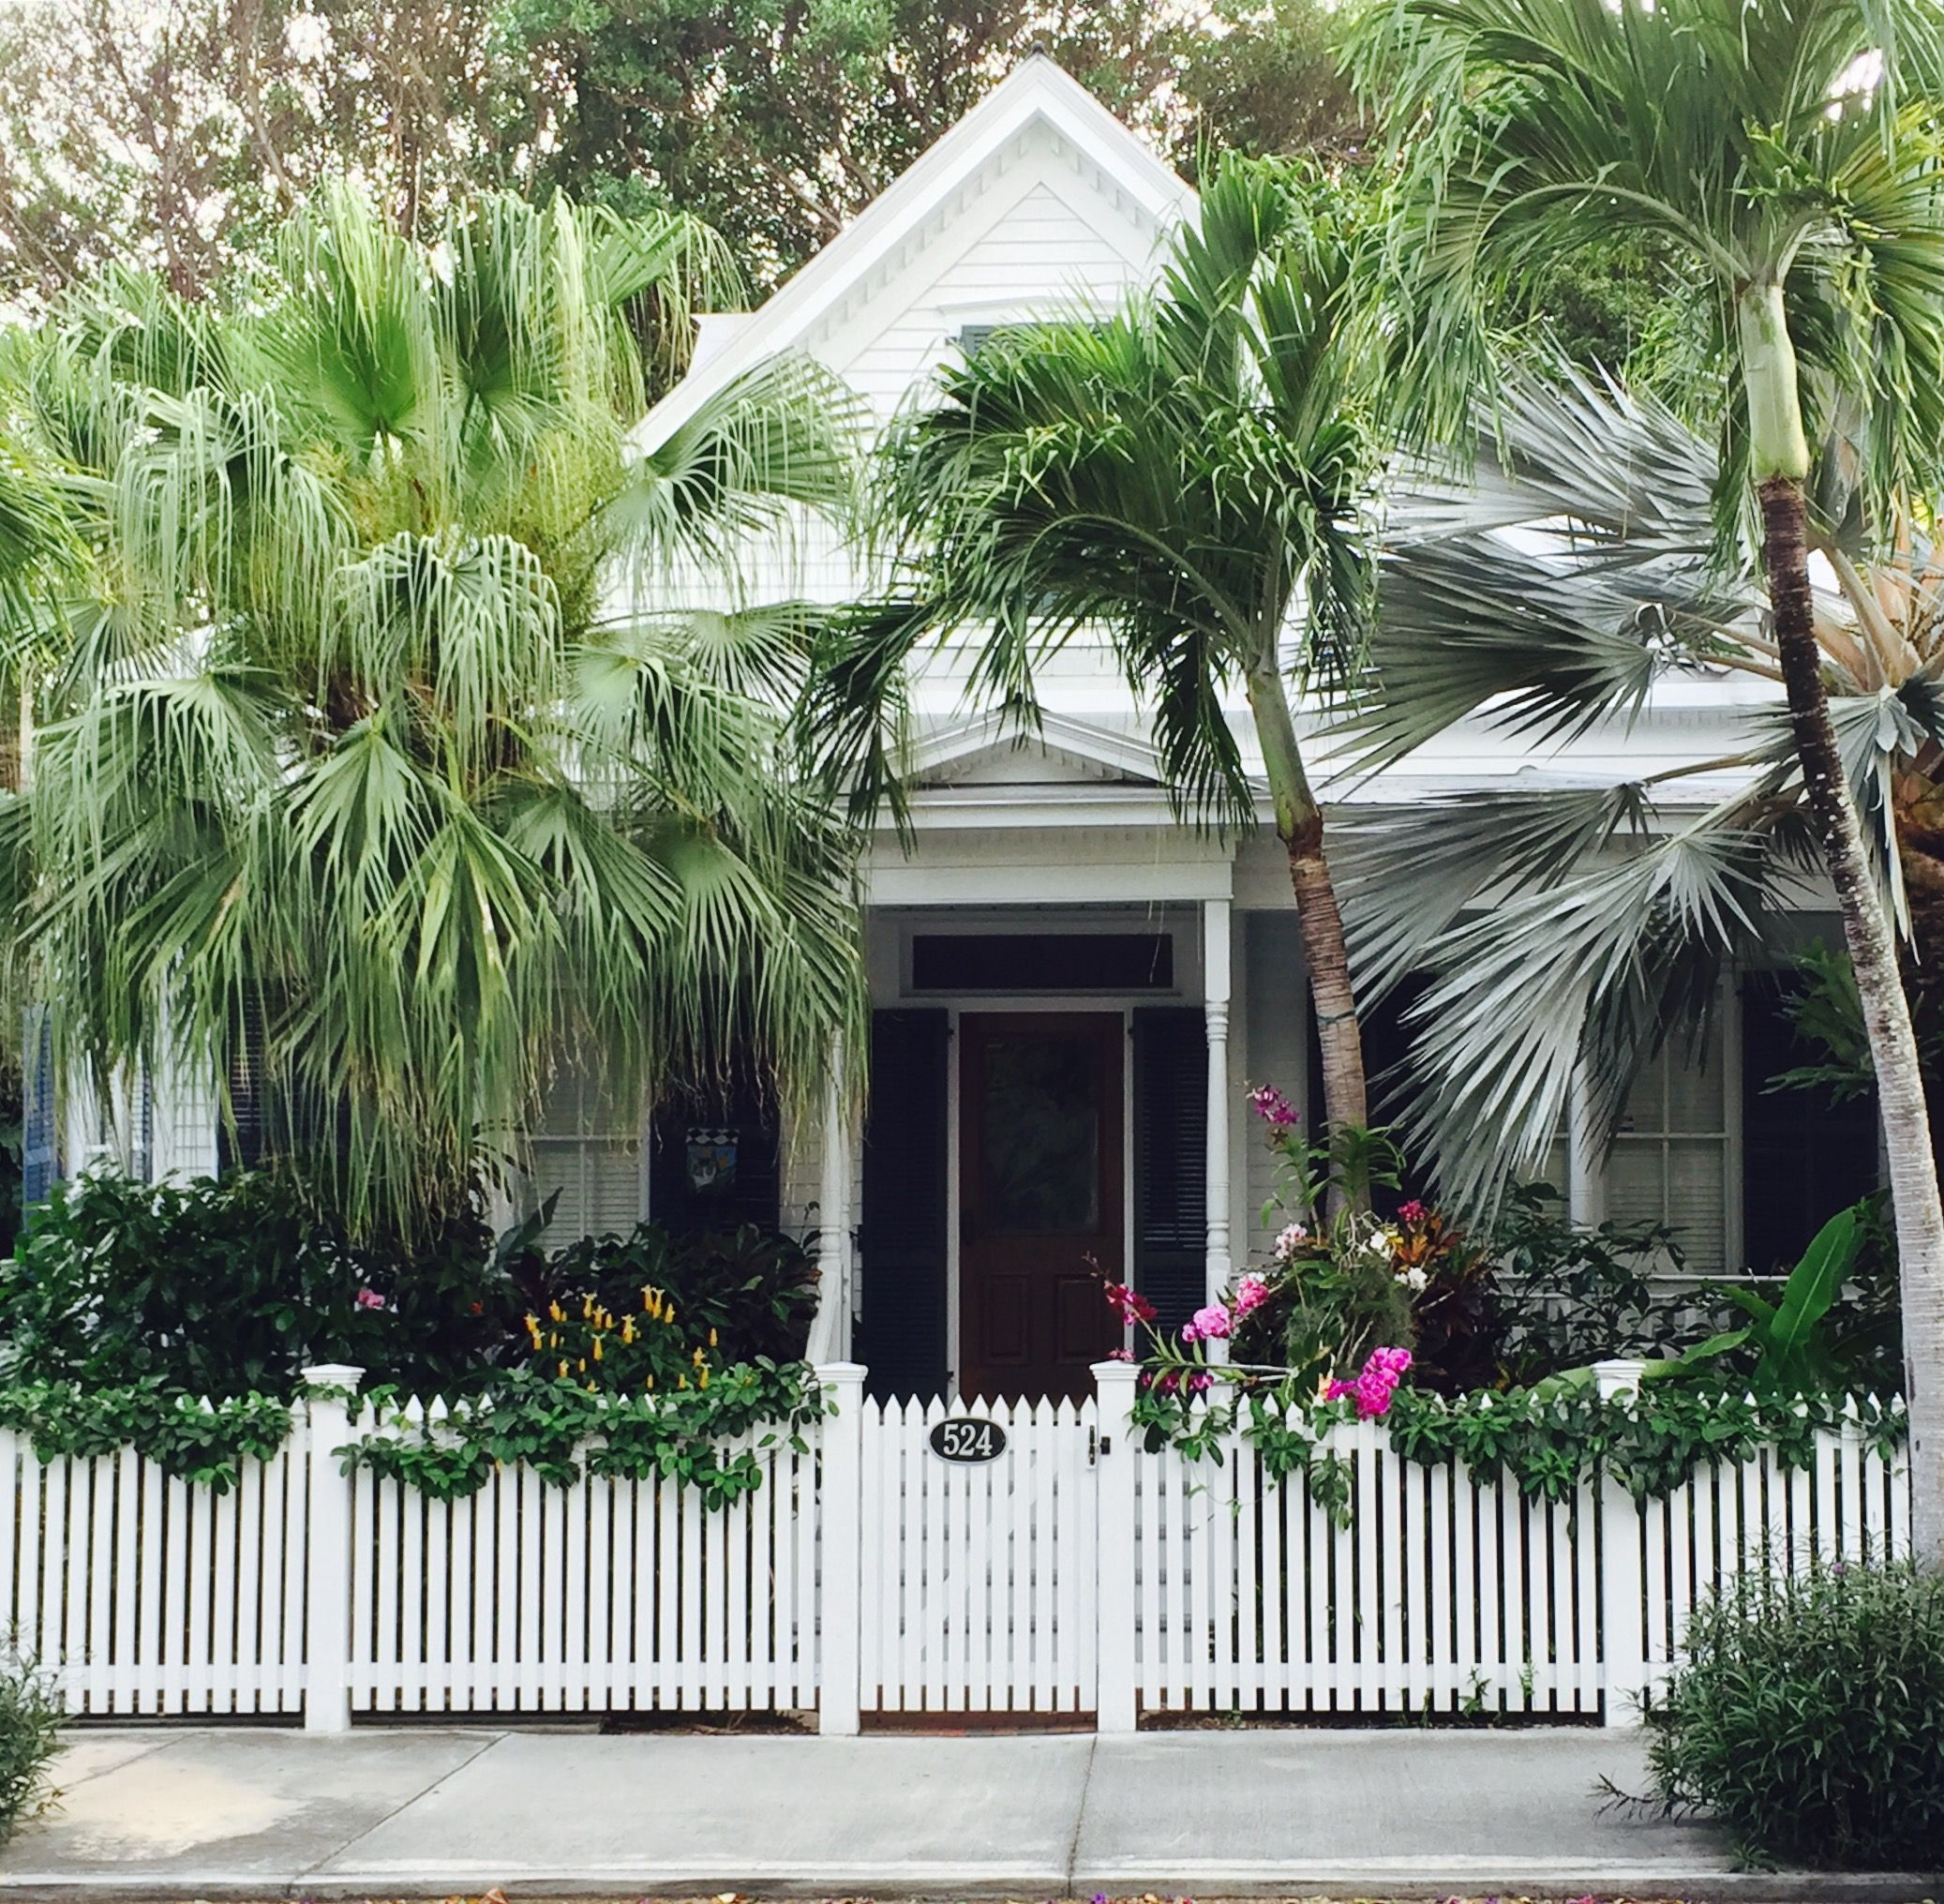 Key West Garden Cottage Paints A Charming Picture Of A Simpler Time Made Luxurious Inside For Modern Living Beach Cottage Style Key West Cottage Key West House